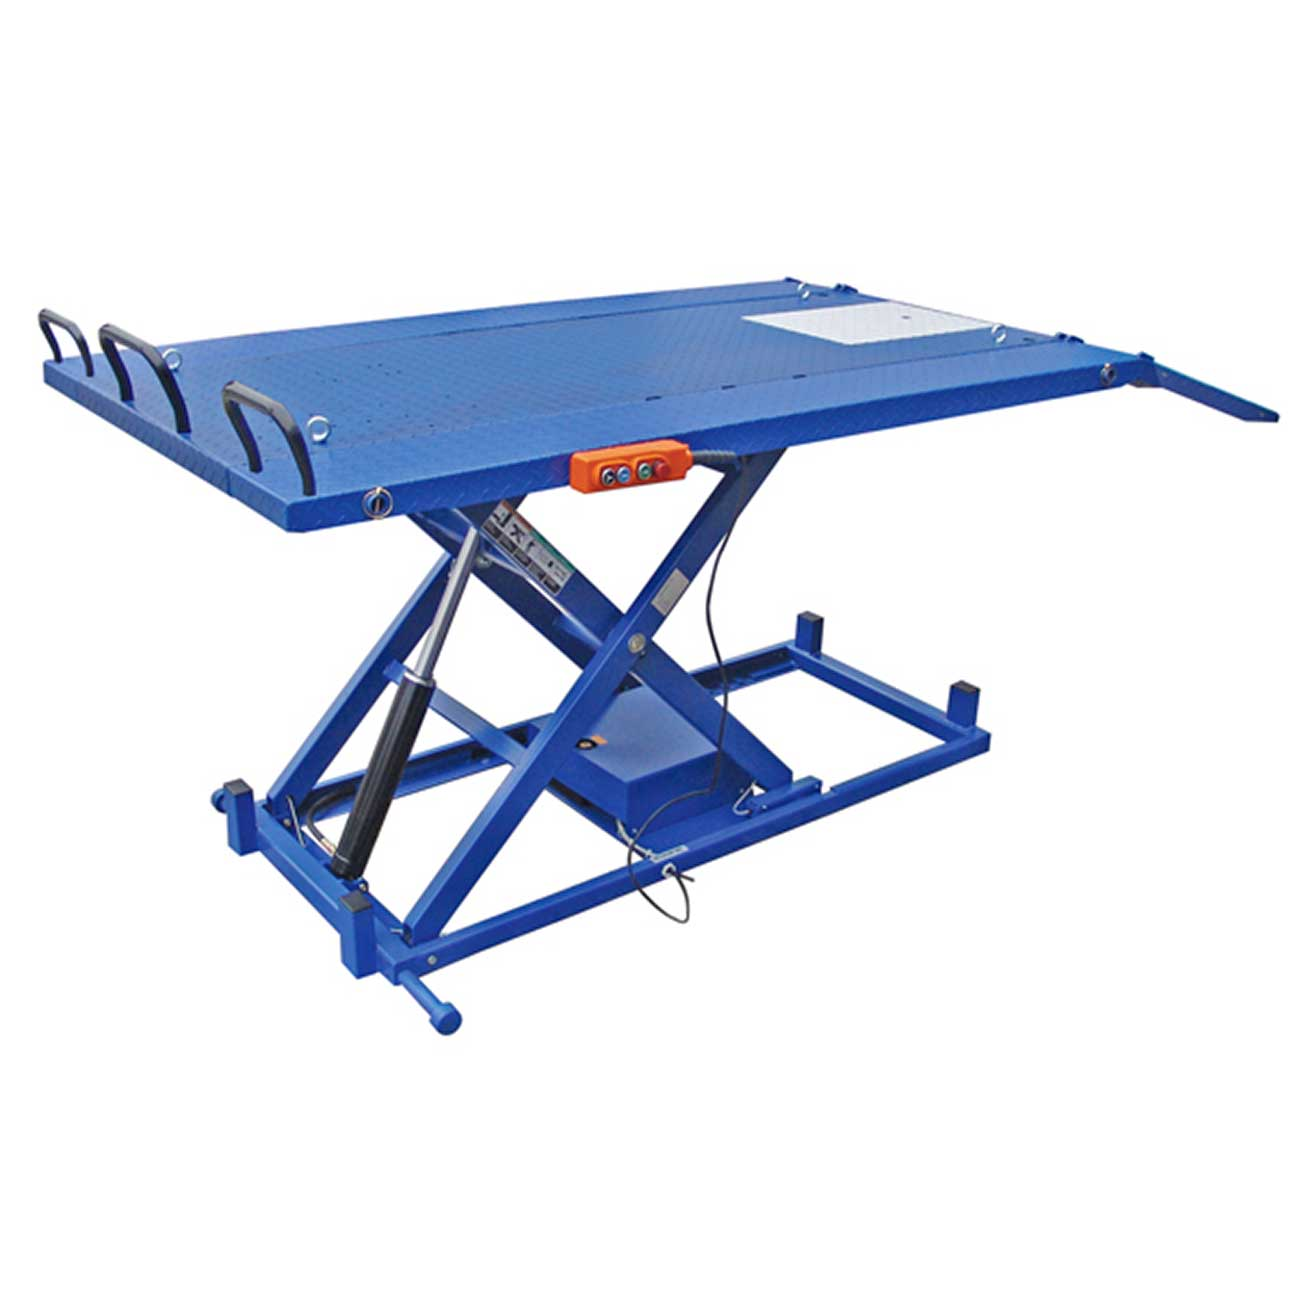 ATD Tools ATV Lift with Retractable Ramp